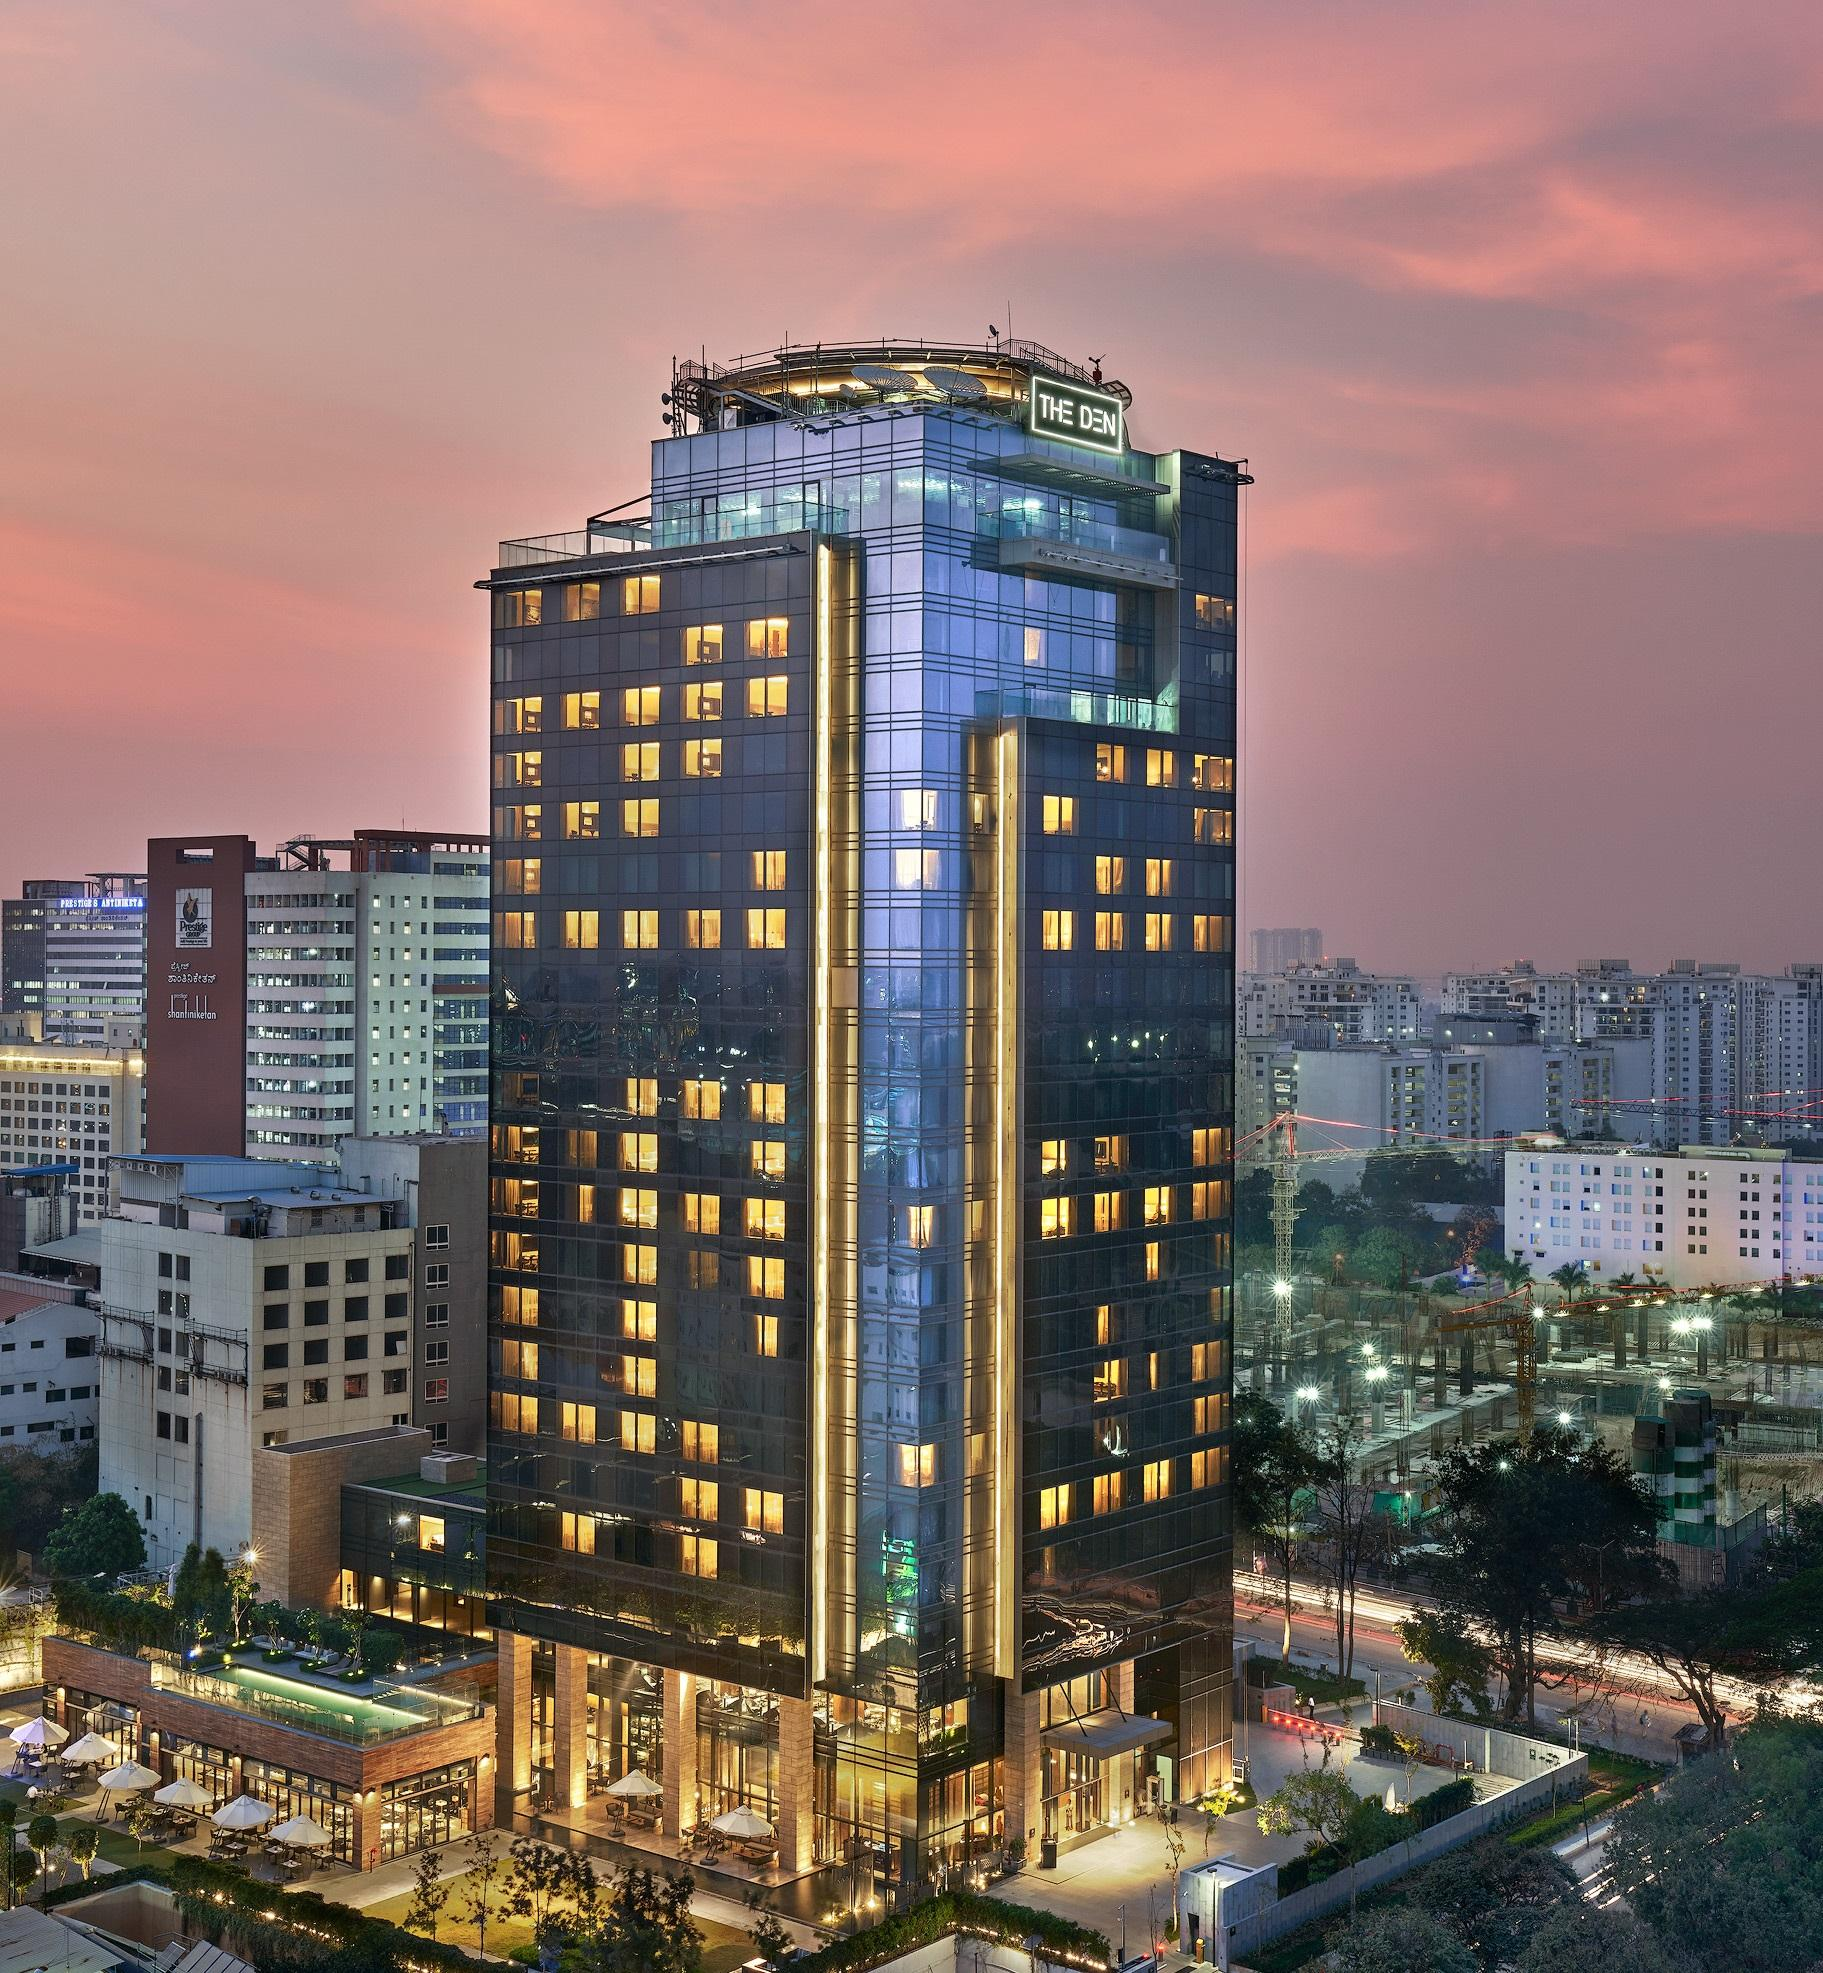 The Den bengaluru hotels